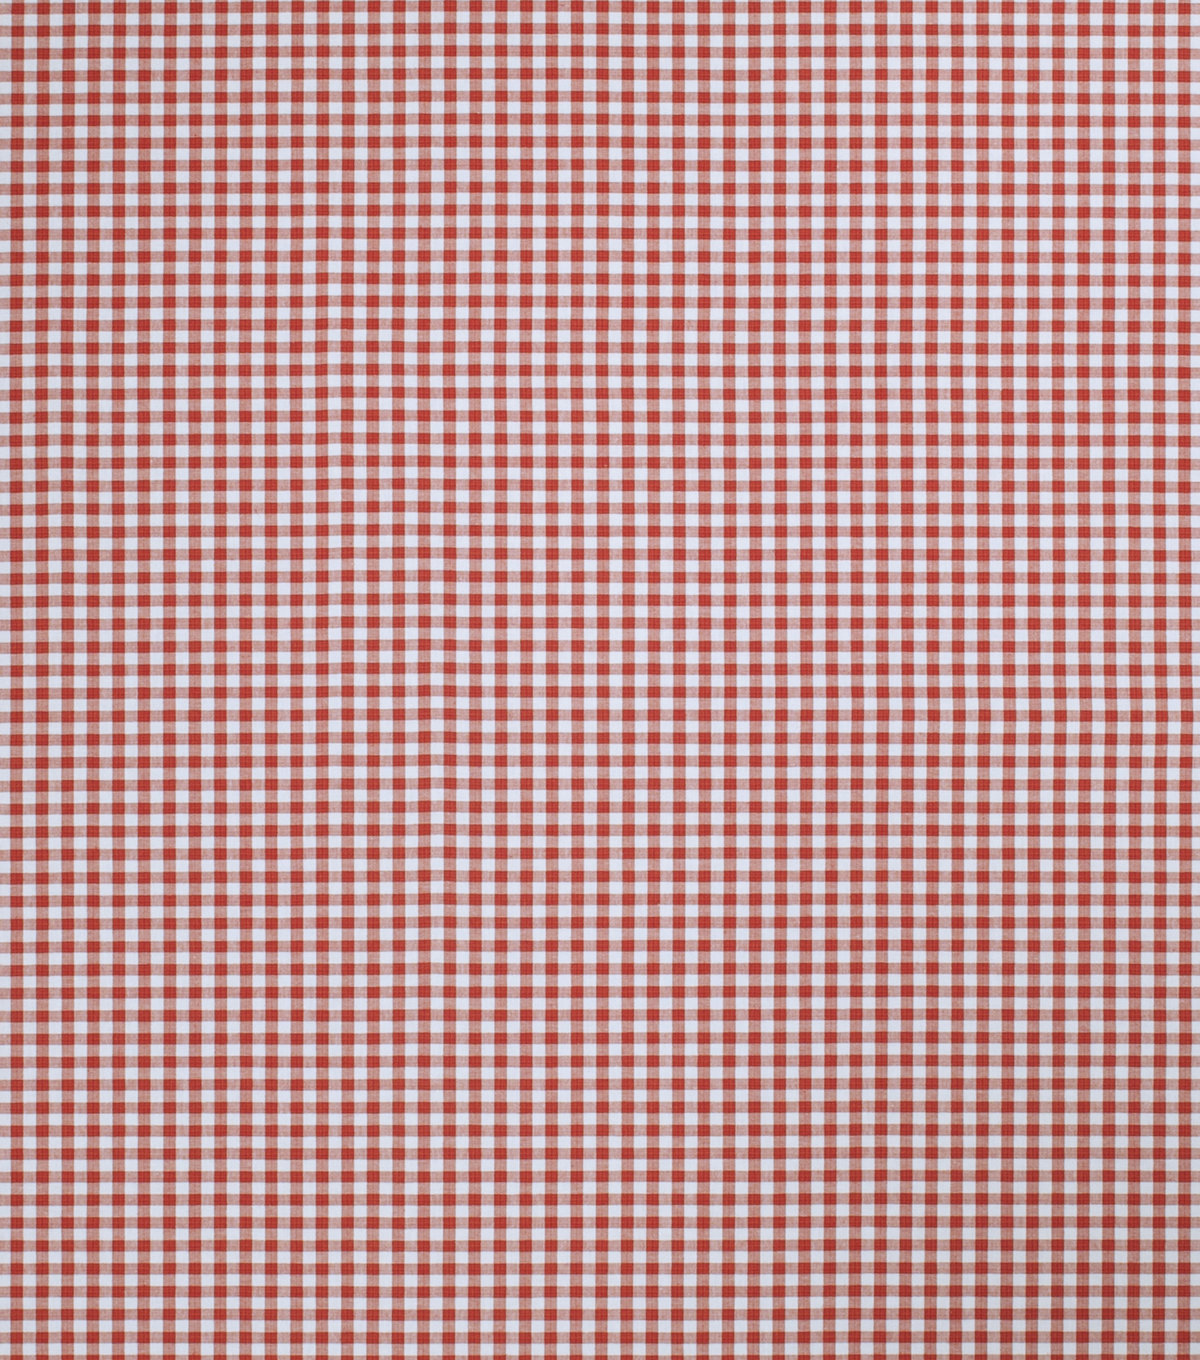 Home Decor 8x8 Fabric Swatch-Eaton Square Accord Red